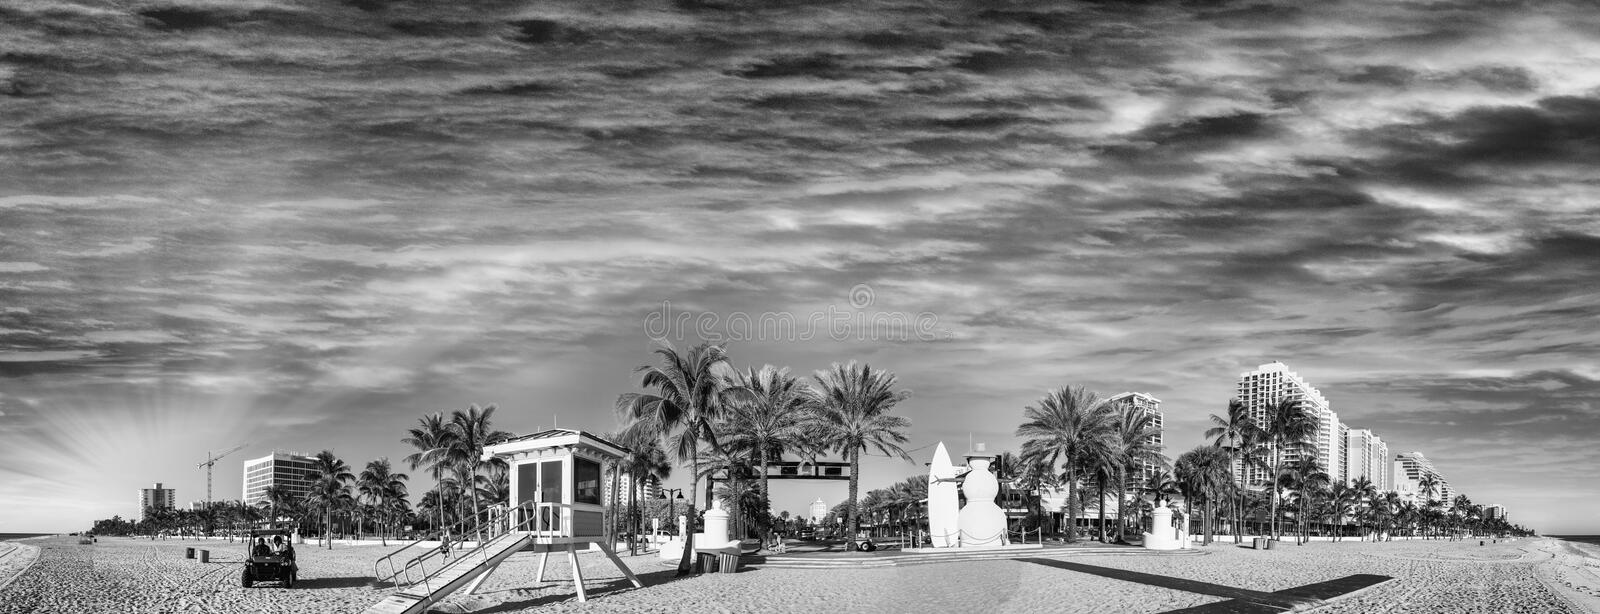 Black and white panoramic view of Fort Lauderdale Beach - Florid royalty free stock photos